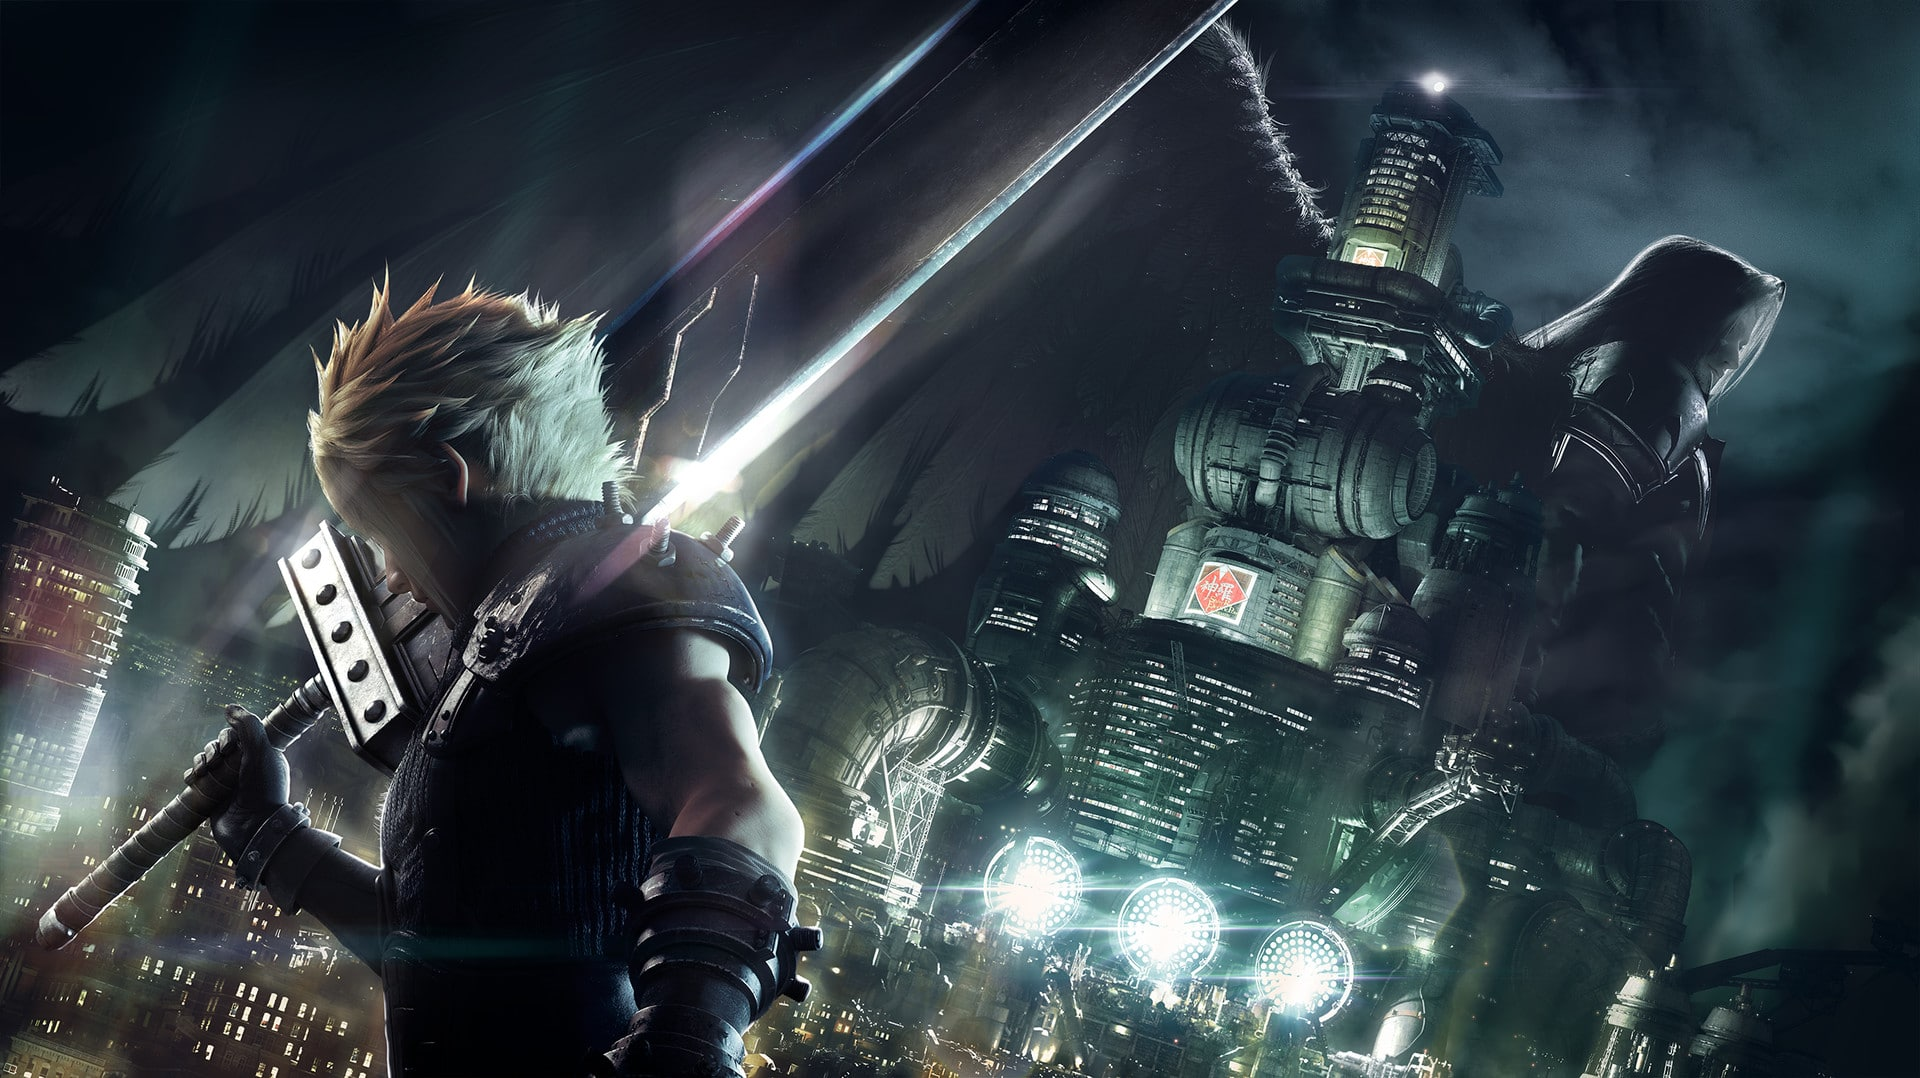 final fantasy vii remake key art featured - Square Enix desmiente la llegada de Final Fantasy VII Remake a Xbox One